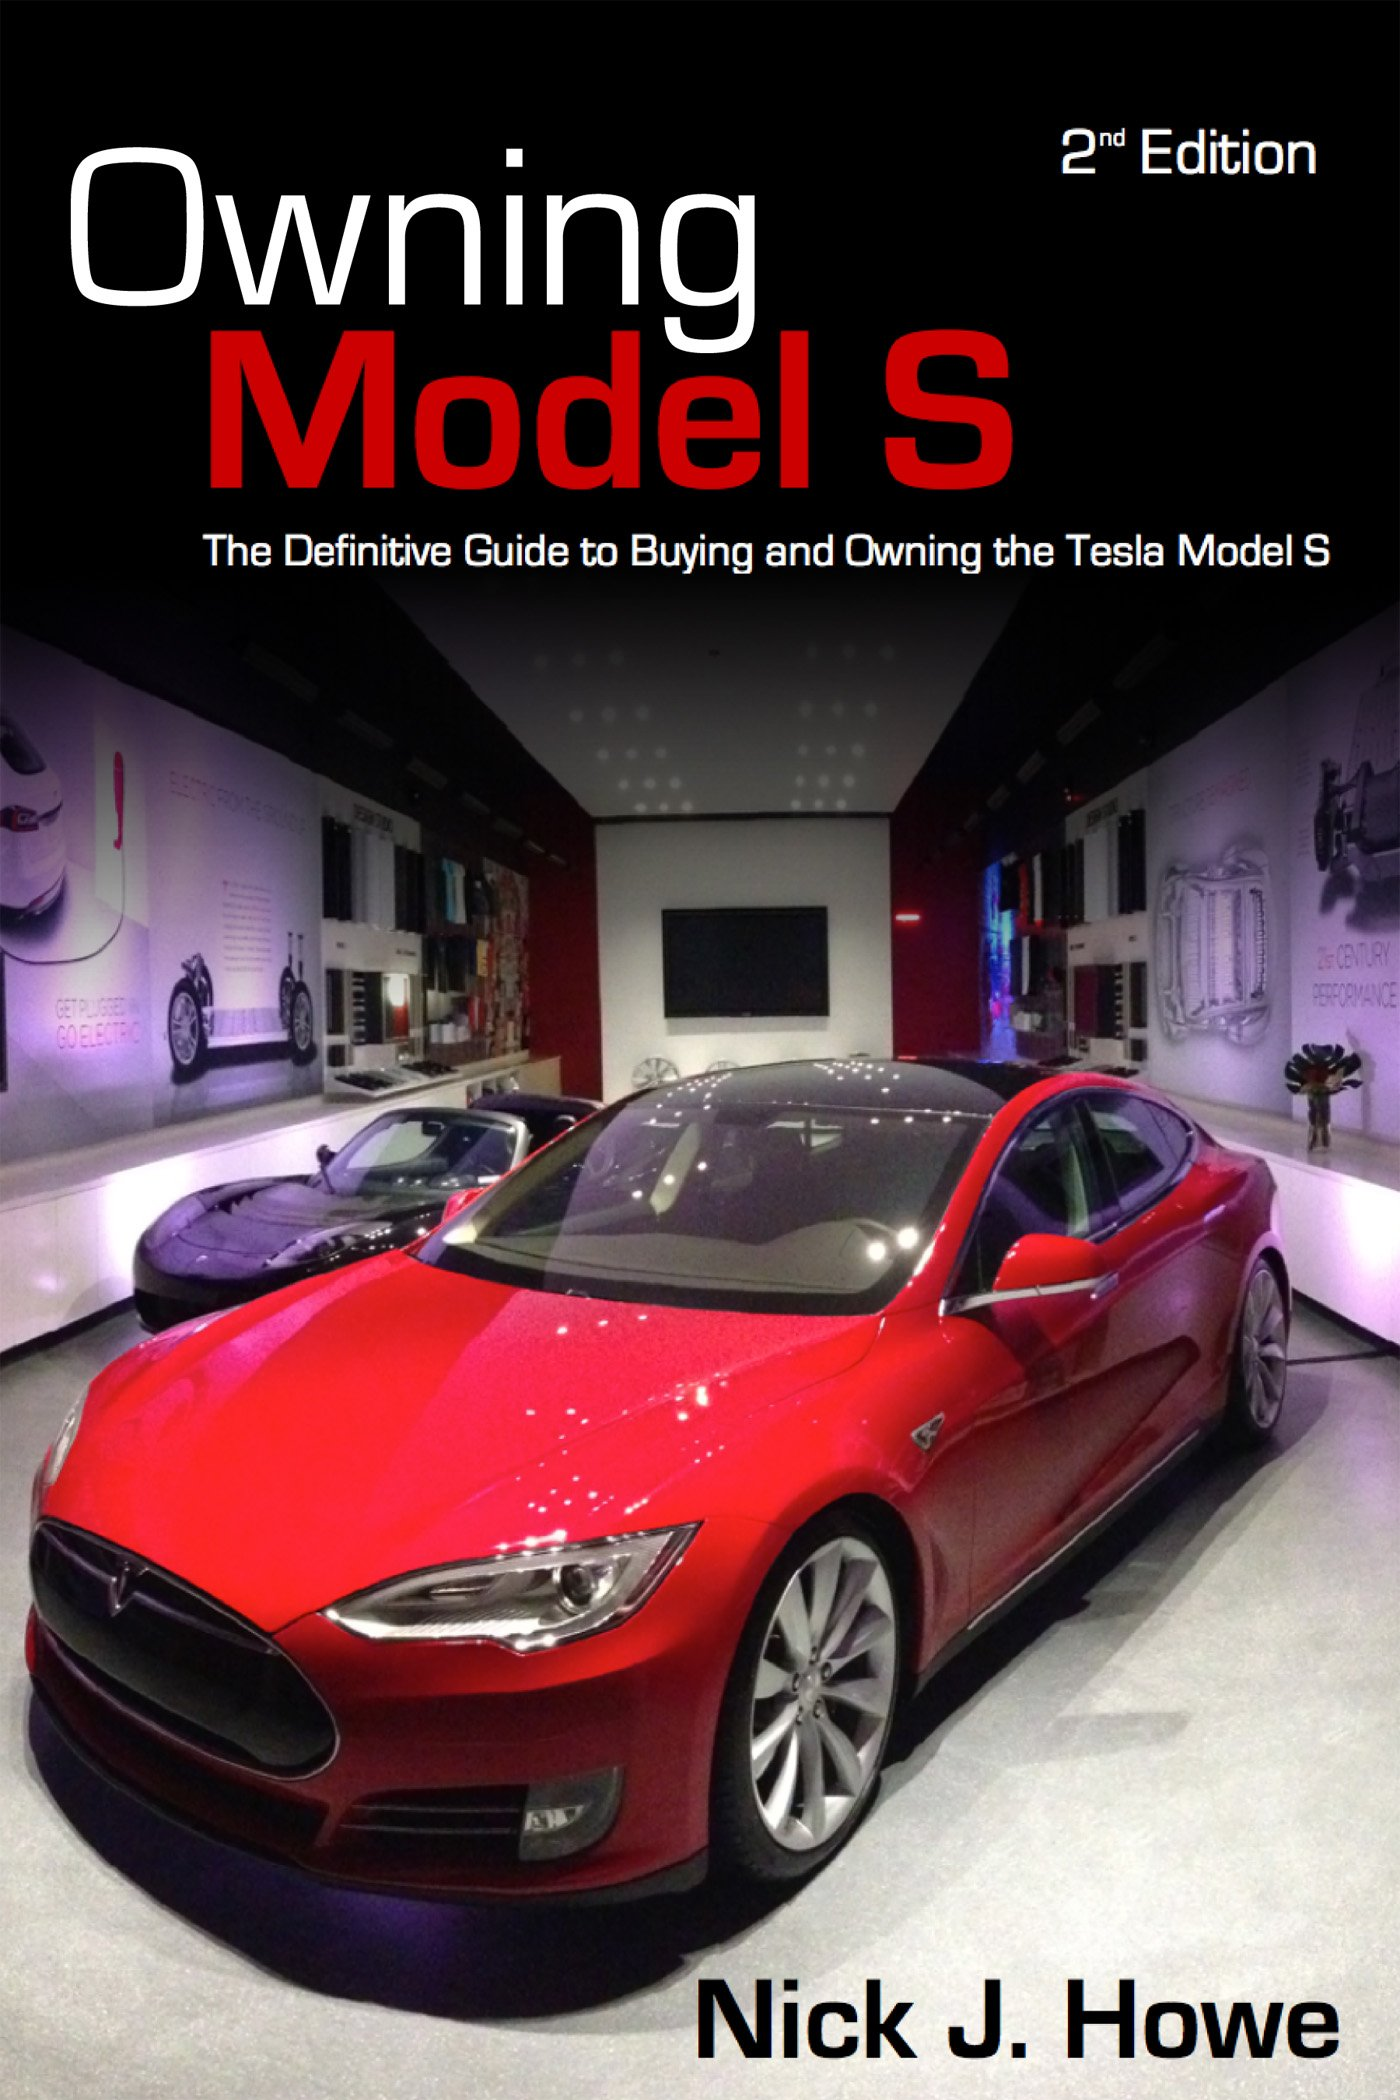 Owning Model S: The Definitive Guide for Buying and Owning the Tesla Model  S: Nick Howe, Roger S. Pressman: 9780996742306: Amazon.com: Books